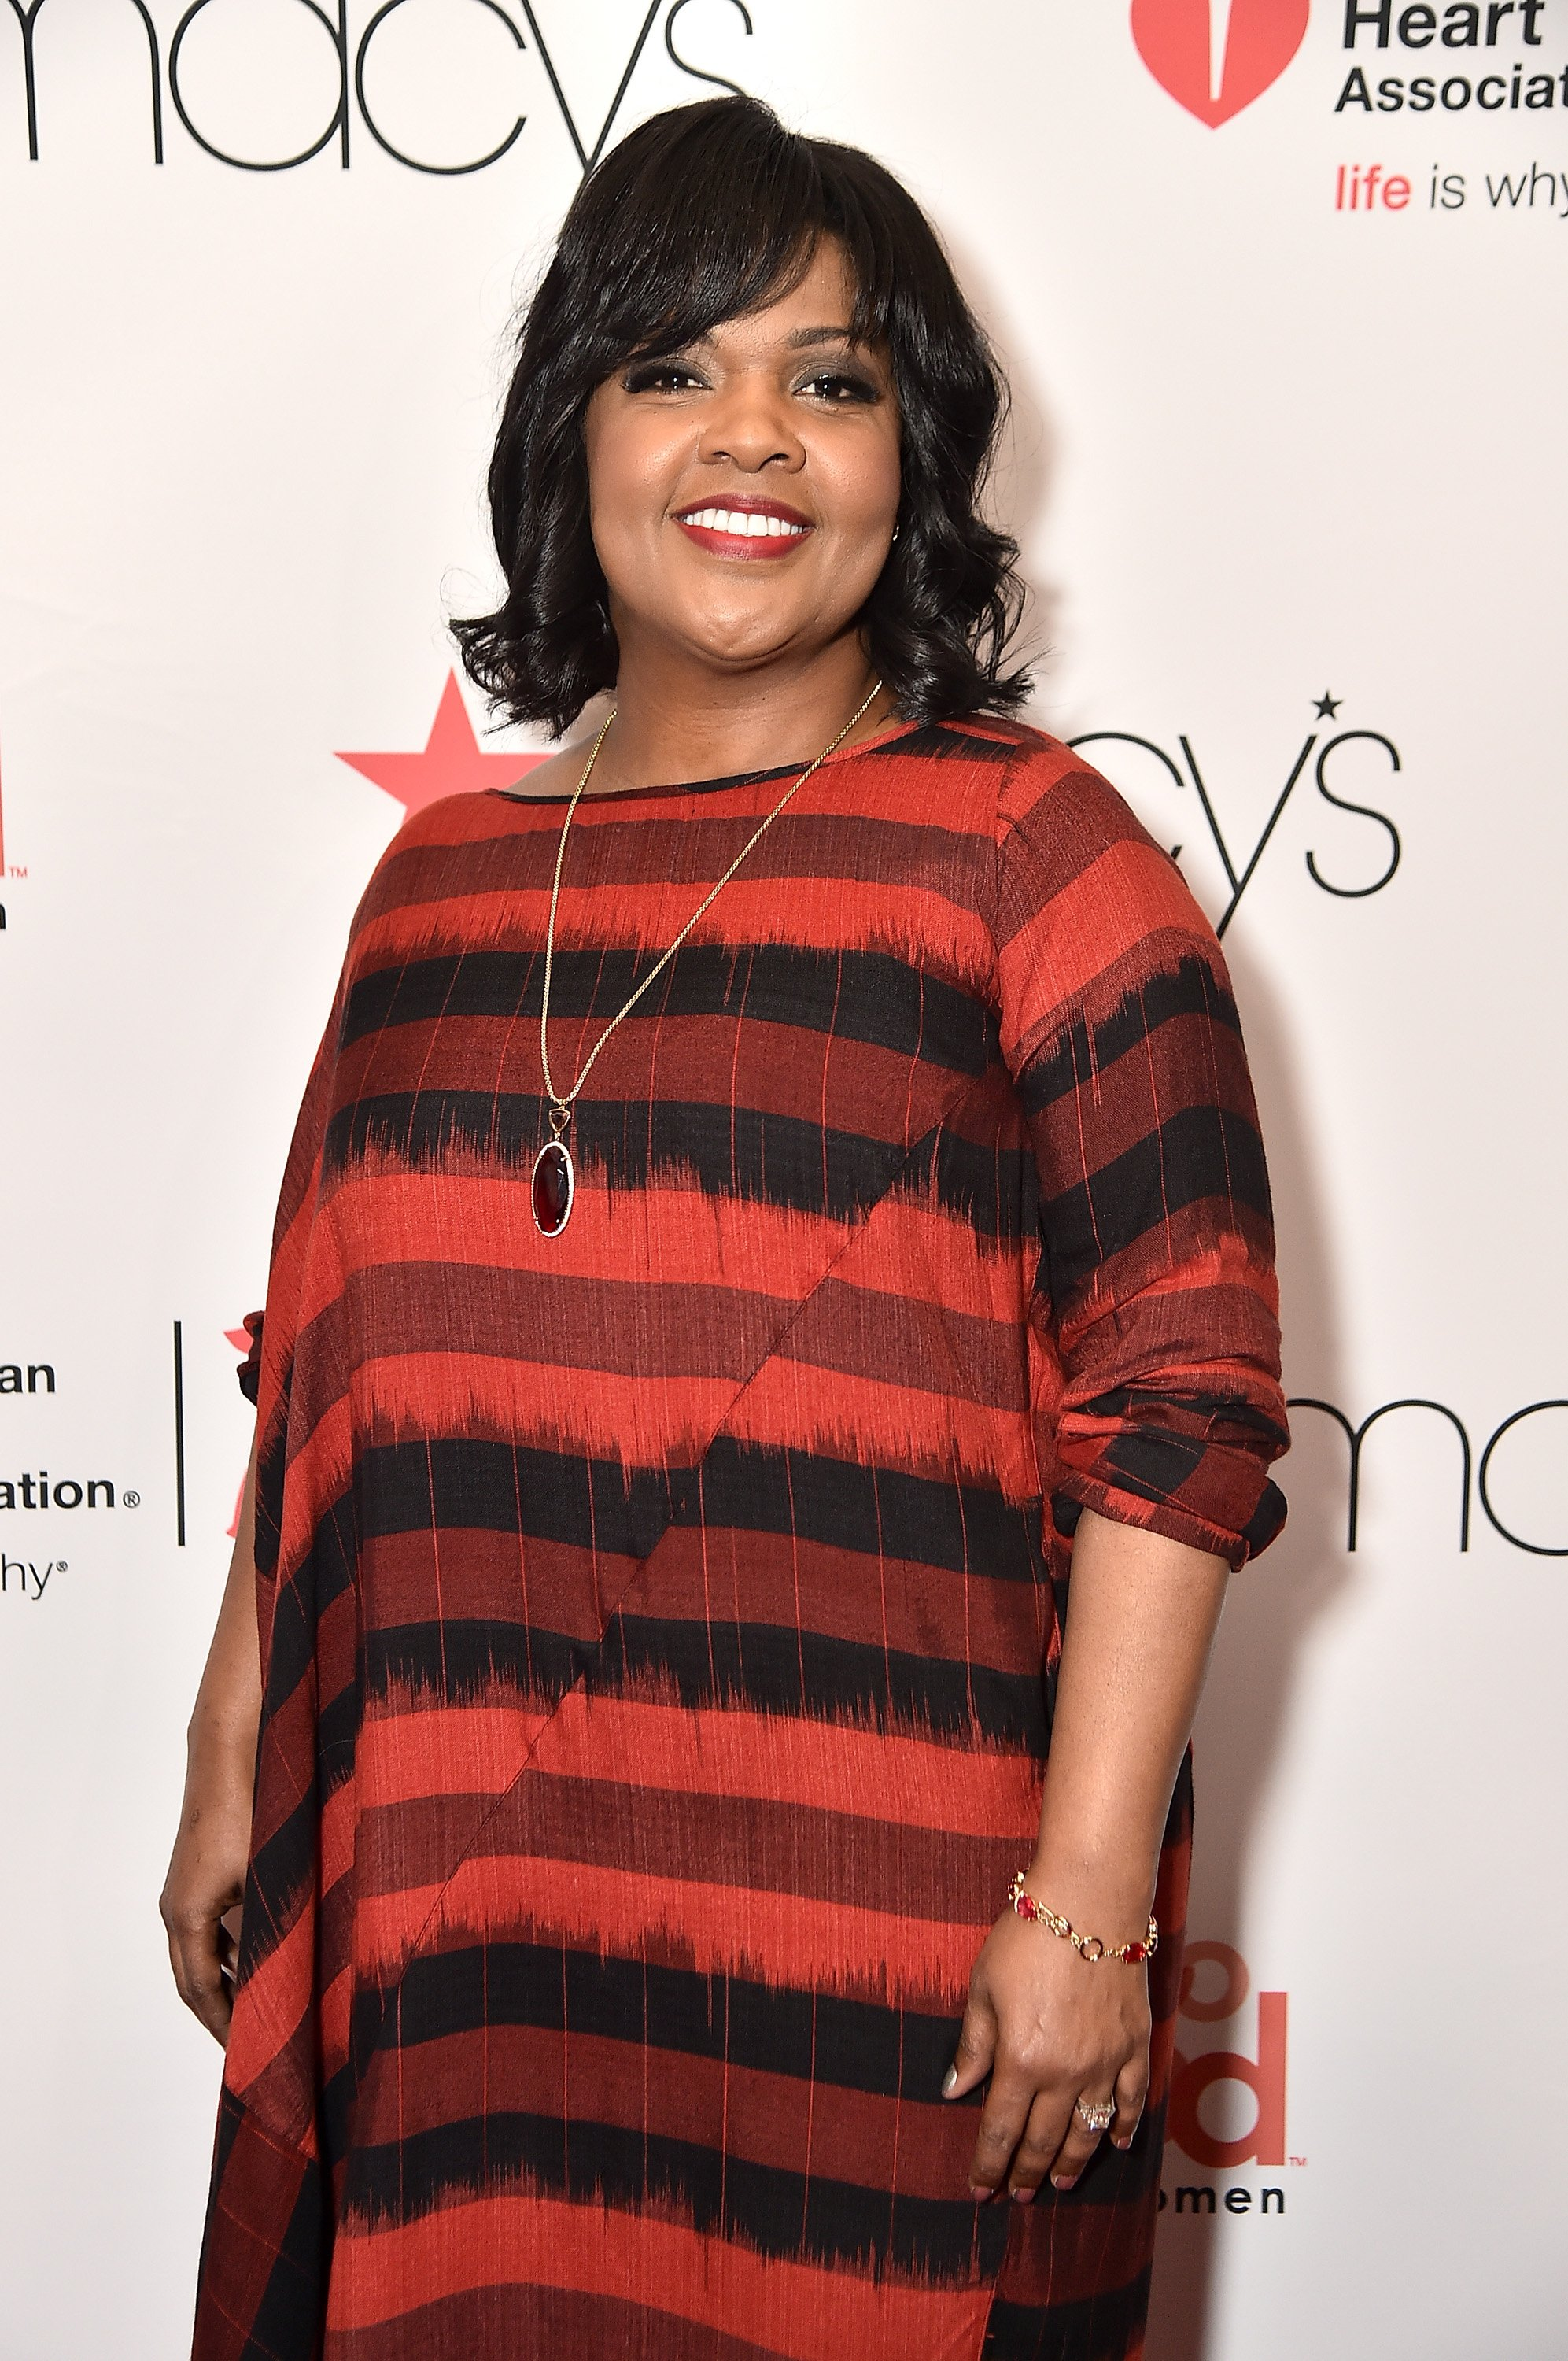 CeCe Winans attends the Go Red For Women Red Dress Collection in New York City on February 8, 2018 | Photo: Getty Images